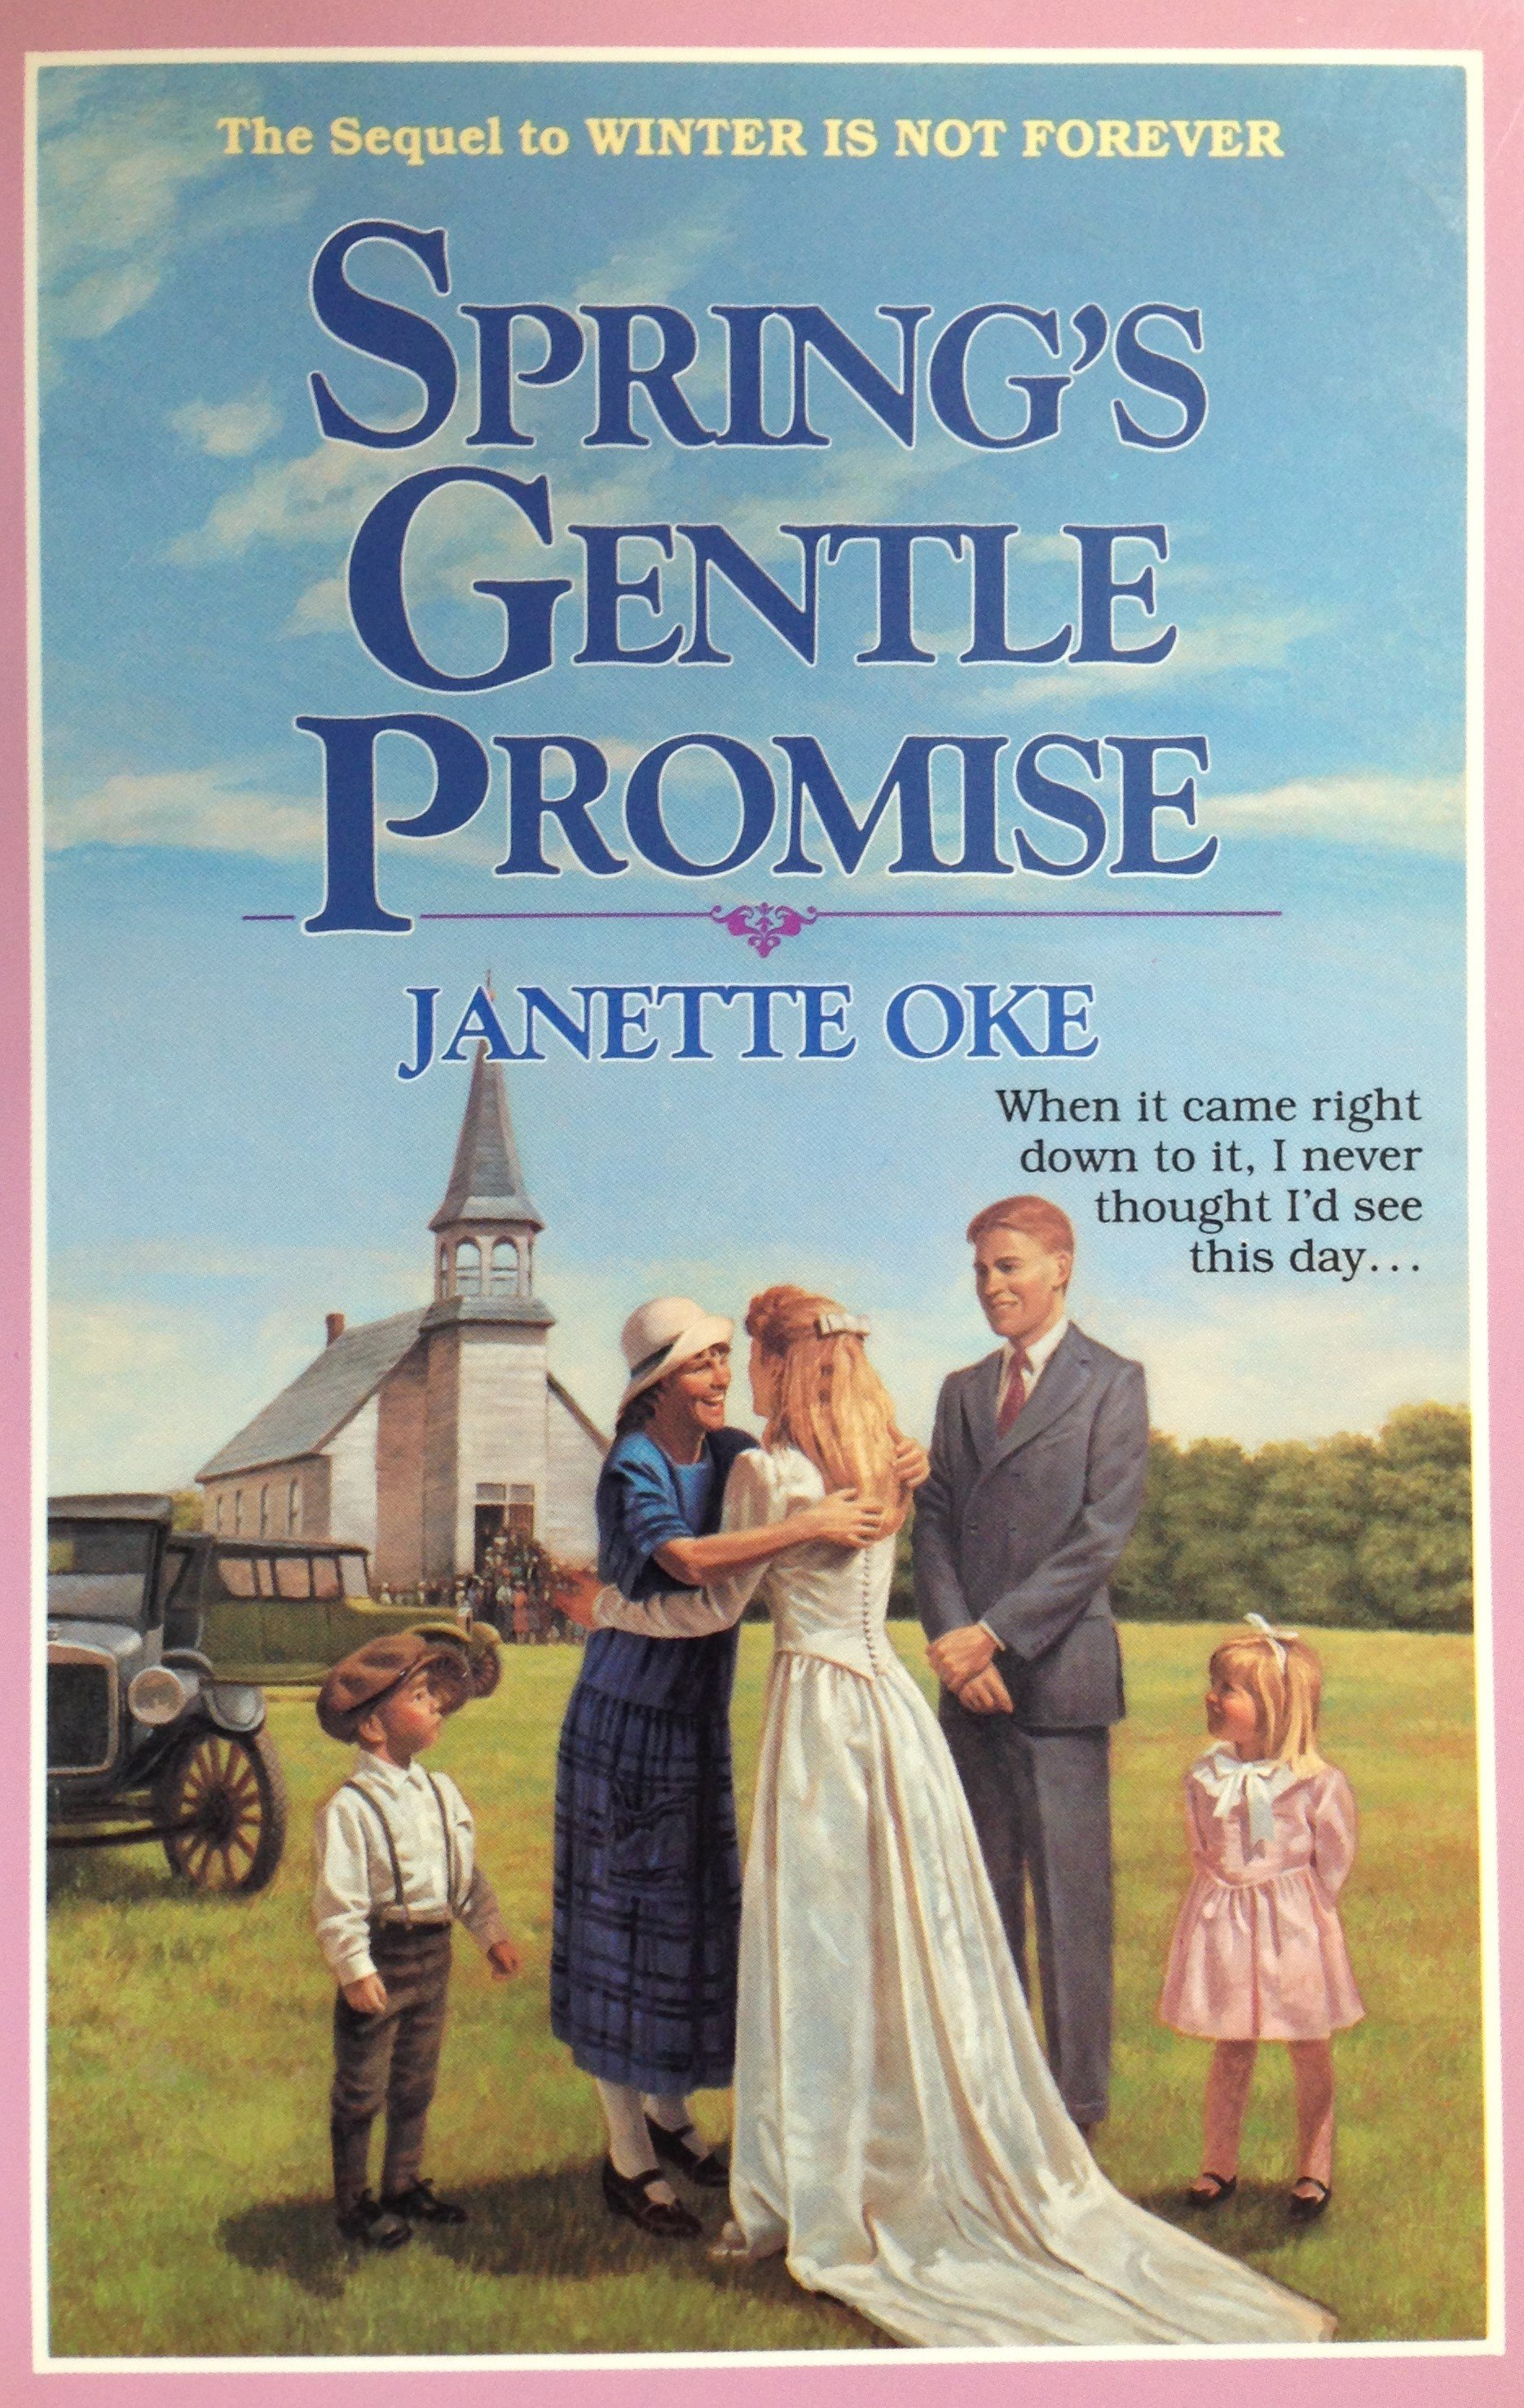 Spring's Gentle Promise by Janette Oke 00126